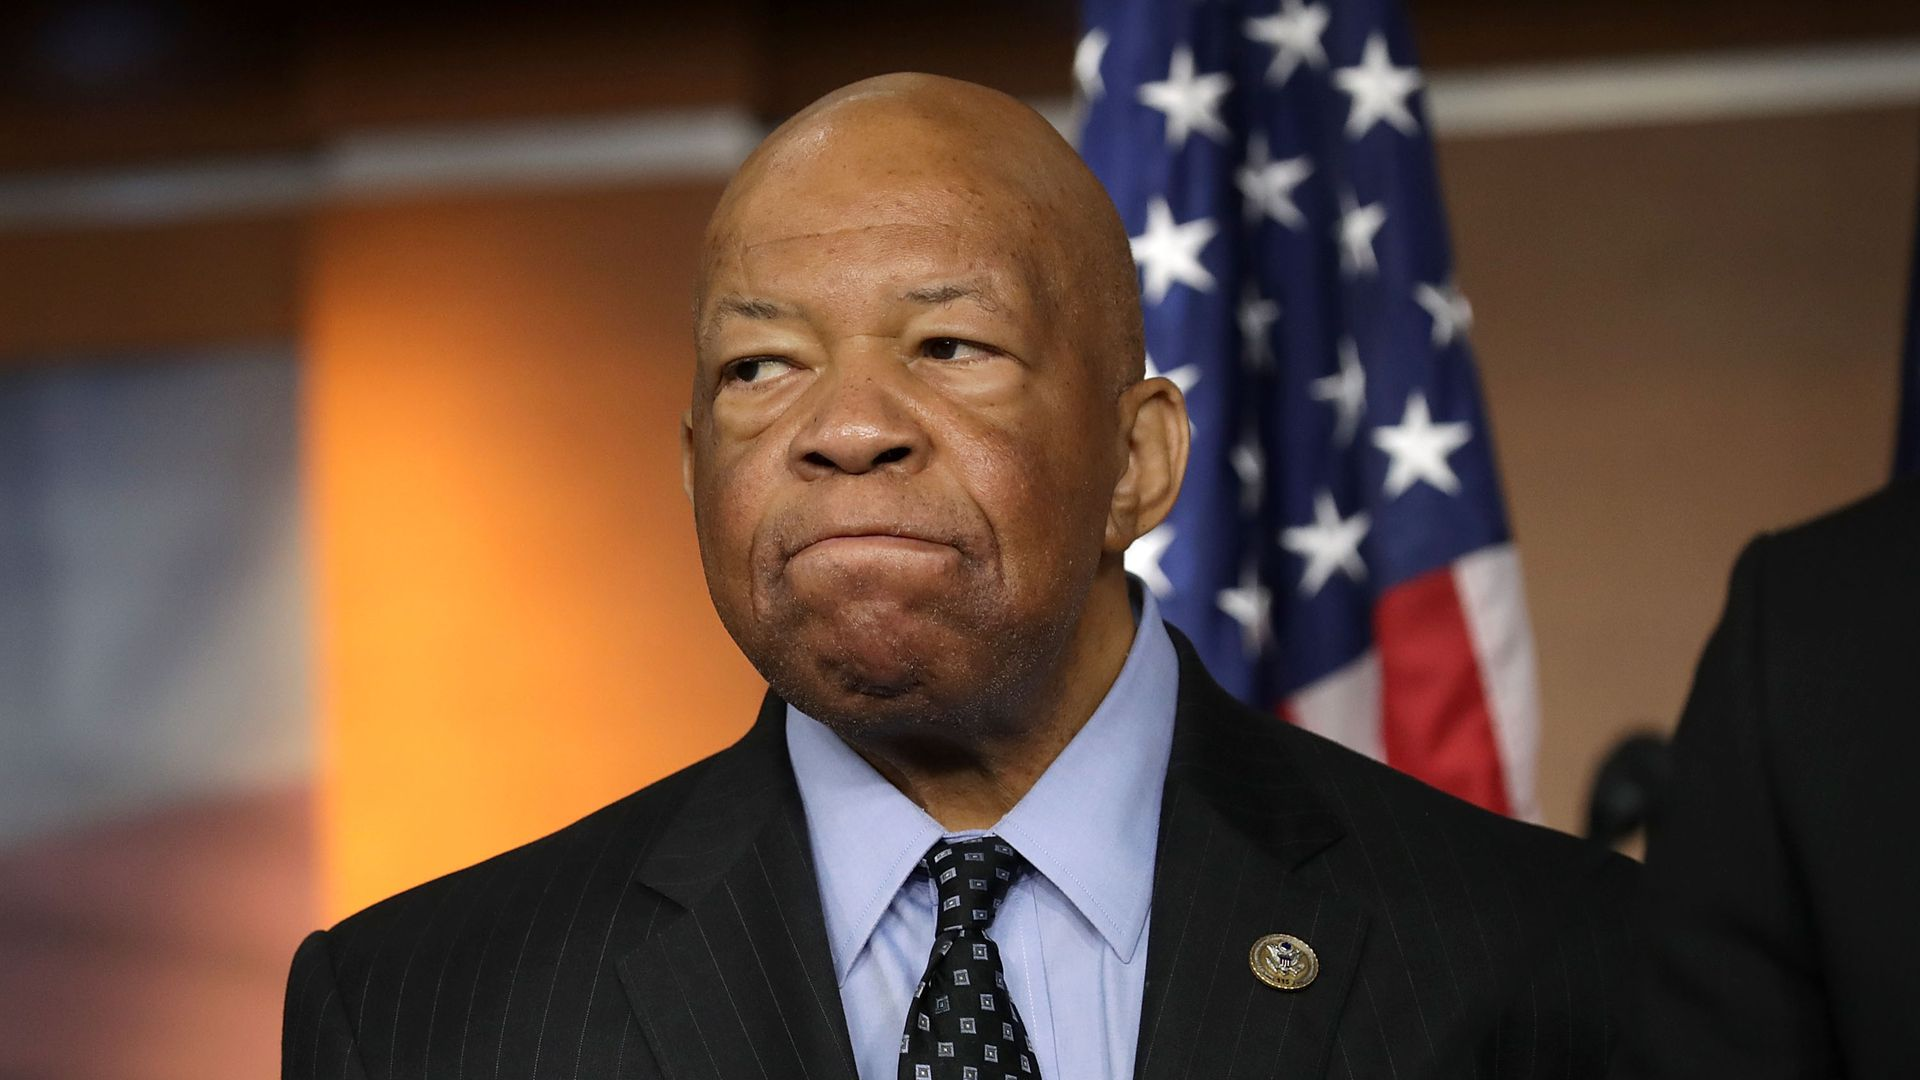 House Oversight Committee Chairman Elijah Cummings is postponing holding a former White House official in contempt.